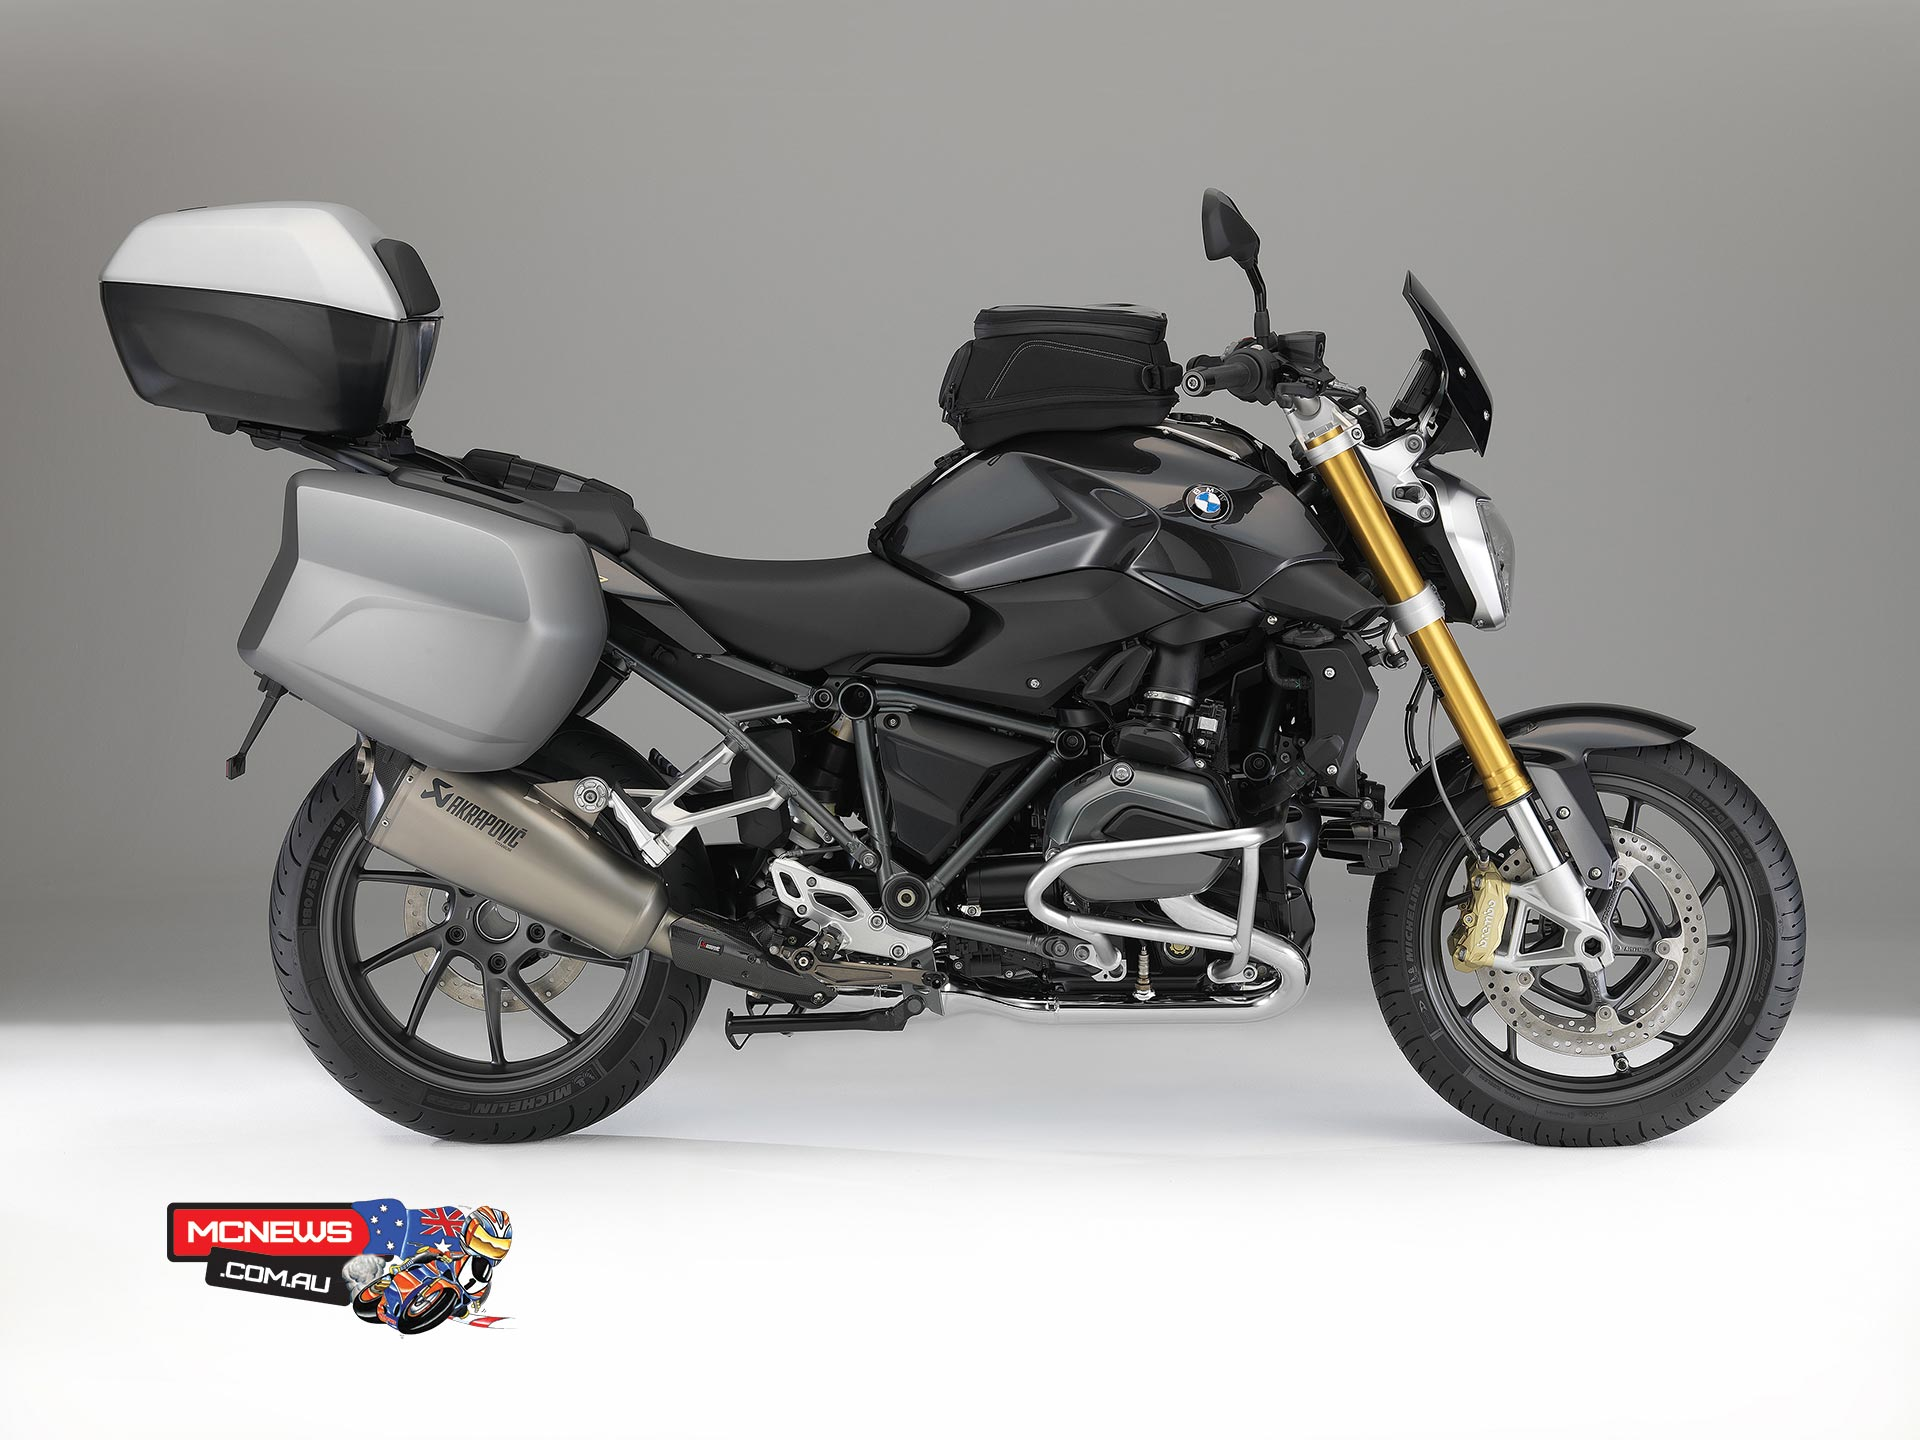 BMW R1200RS 2015 images #9248